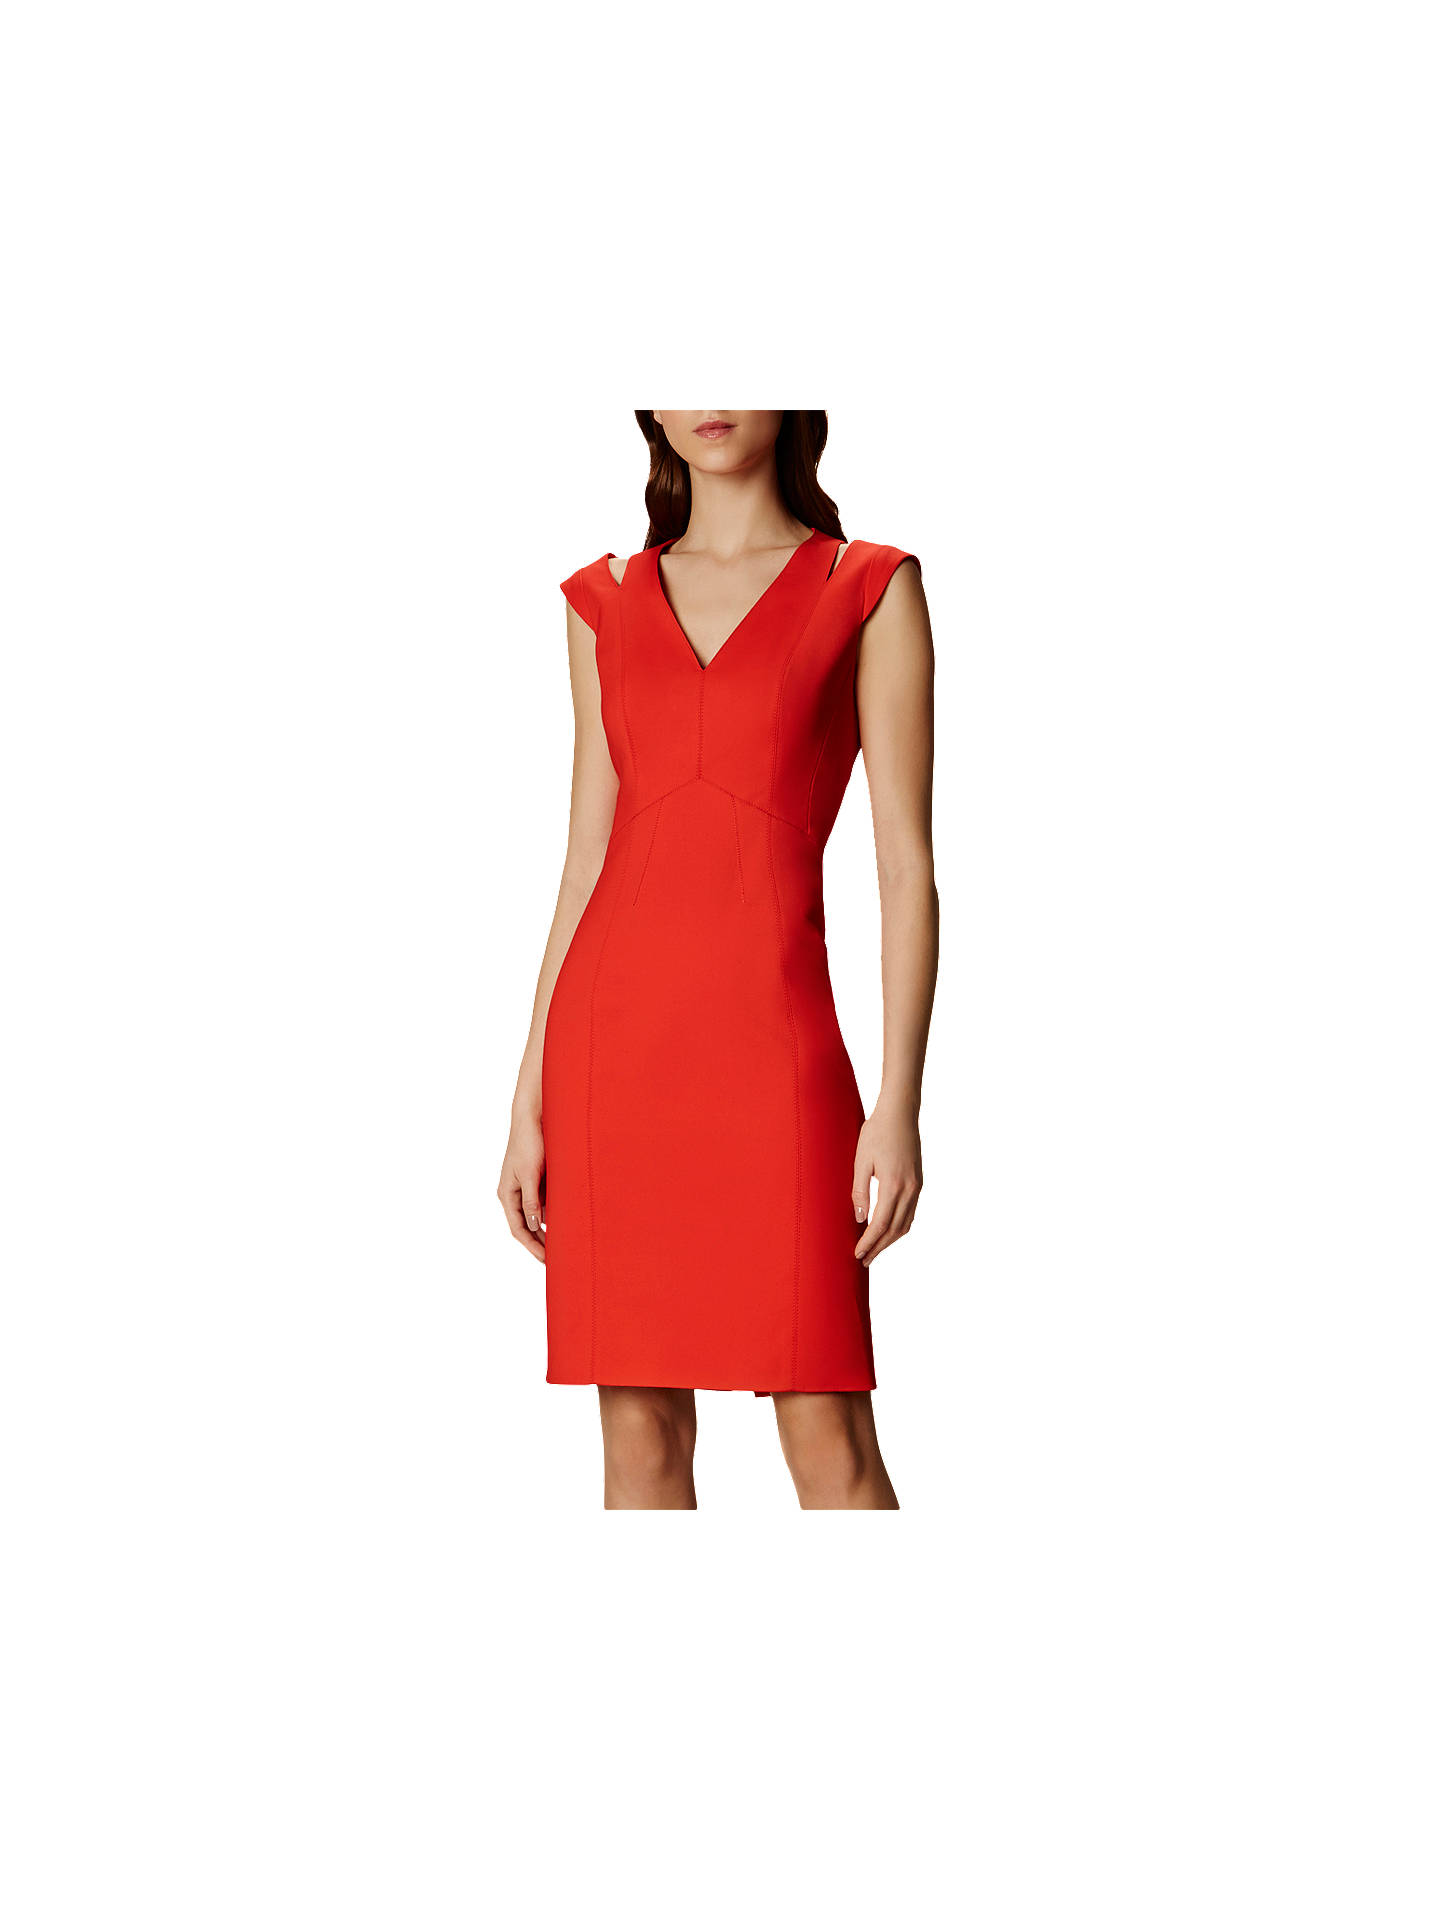 78dfae6d6d Buy Karen Millen Cut Out Pencil Dress, Orange, 6 Online at johnlewis.com ...